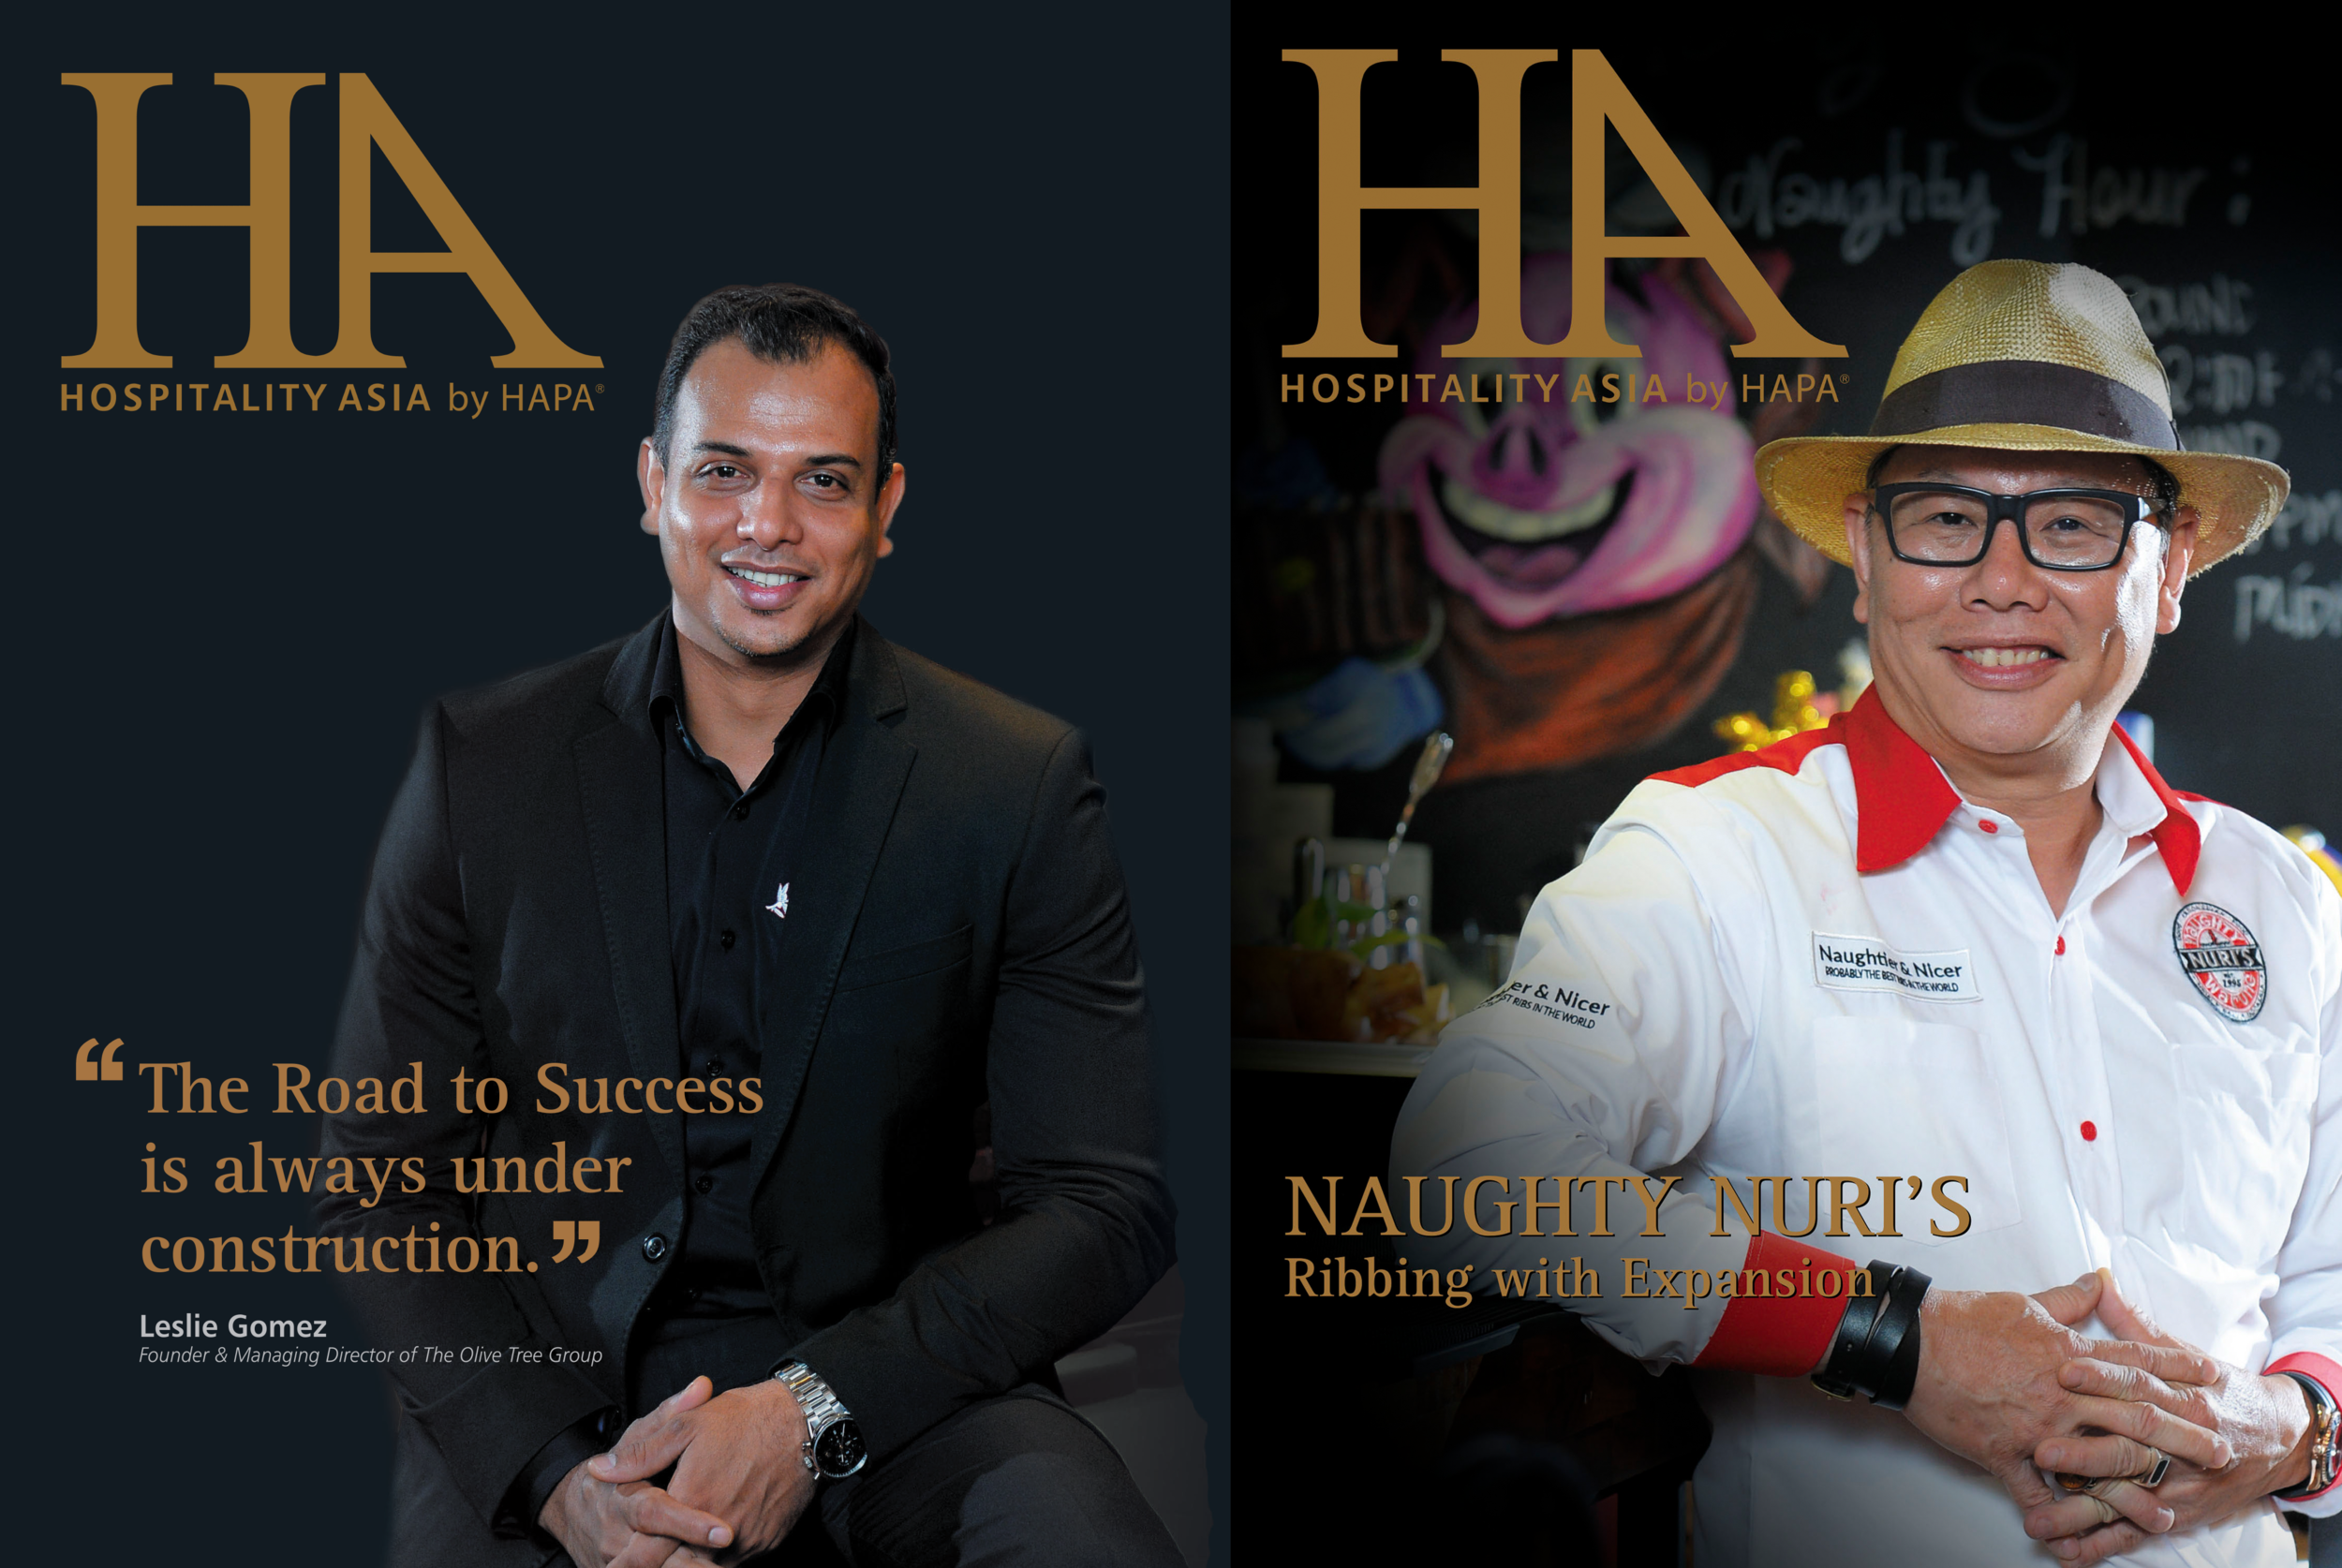 HAPA Reader - Hospitality Asia is a trade, F&B and travel magazine that provides coverage on the hospitality, F&B, travel and entertainment industry. Established in 1994, the magazine is distributed primarily in Malaysia and Singapore, as well as other countries within South East Asia through our online version.Hospitality Asia is regarded as the preferred magazine for the hospitality and F&B industry. Our audiences refer to Hospitality Asia's recommendations for outstanding travel and dining experiences, new innovation and services related to the hospitality industry. With our increased profile, Hospitality Asia now covers a wide readership ranging from business corporates to leisure and travel segments of the market.